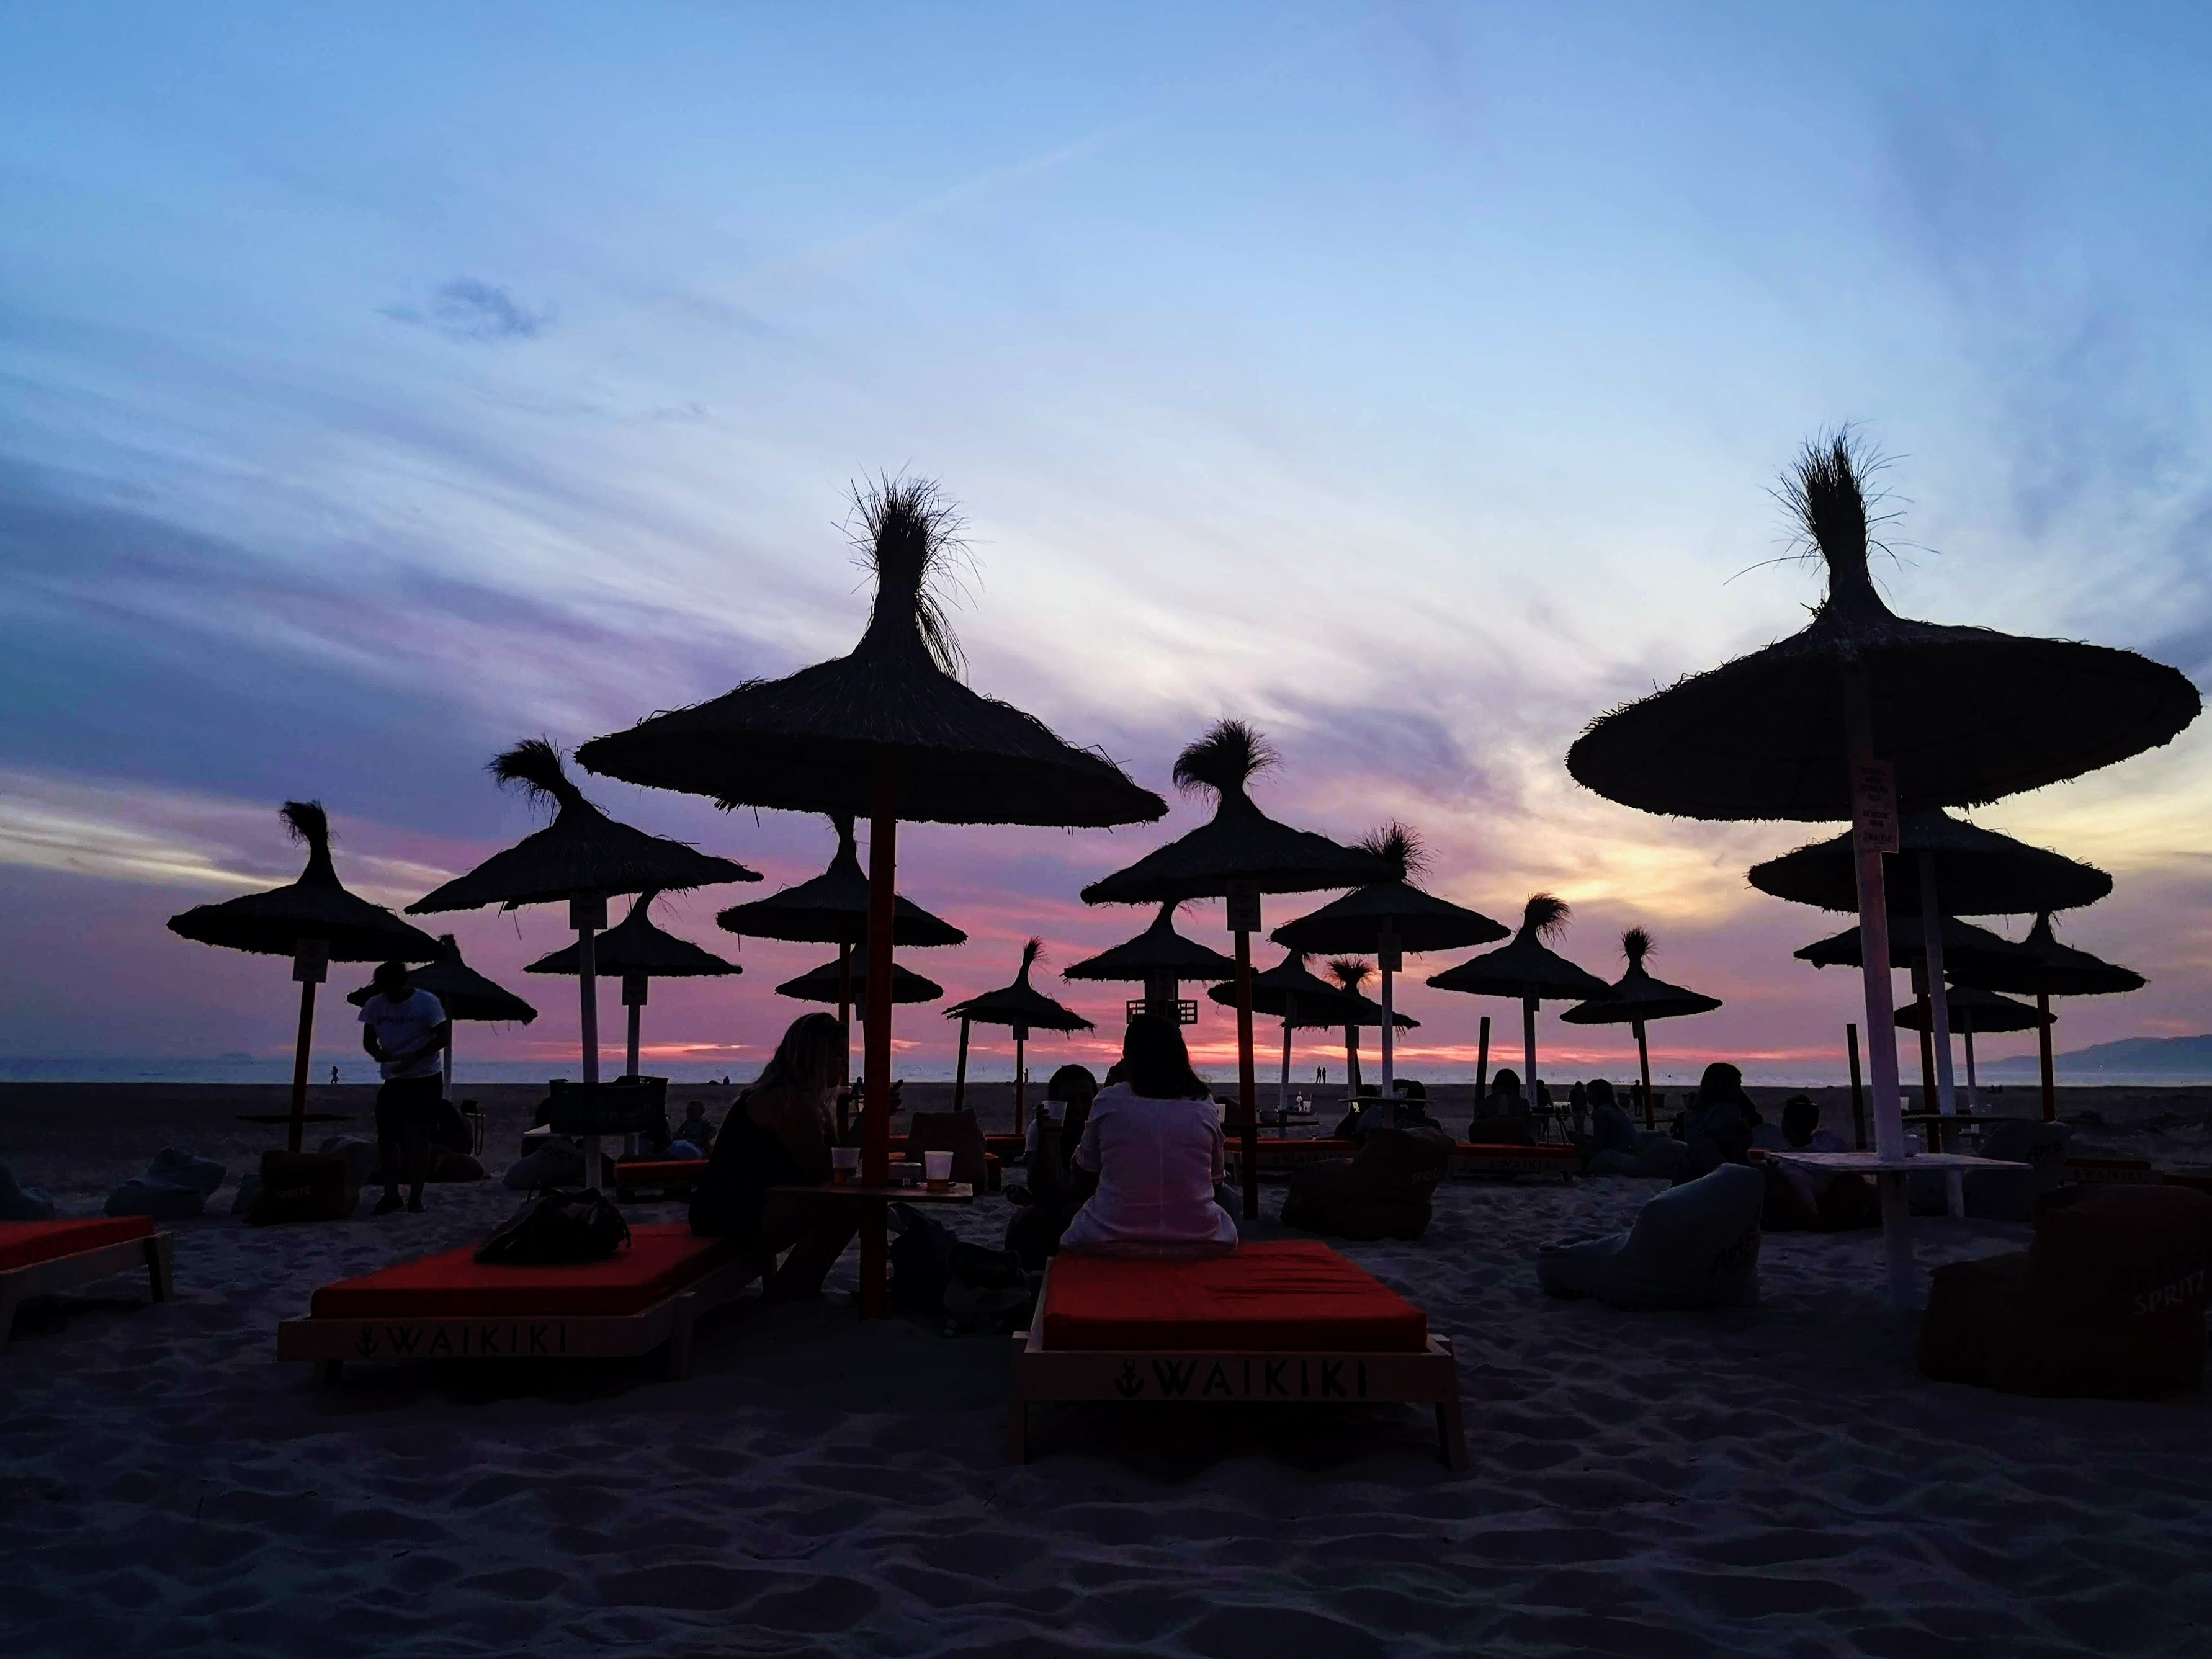 people sitting on beach chairs under umbrella during sunset